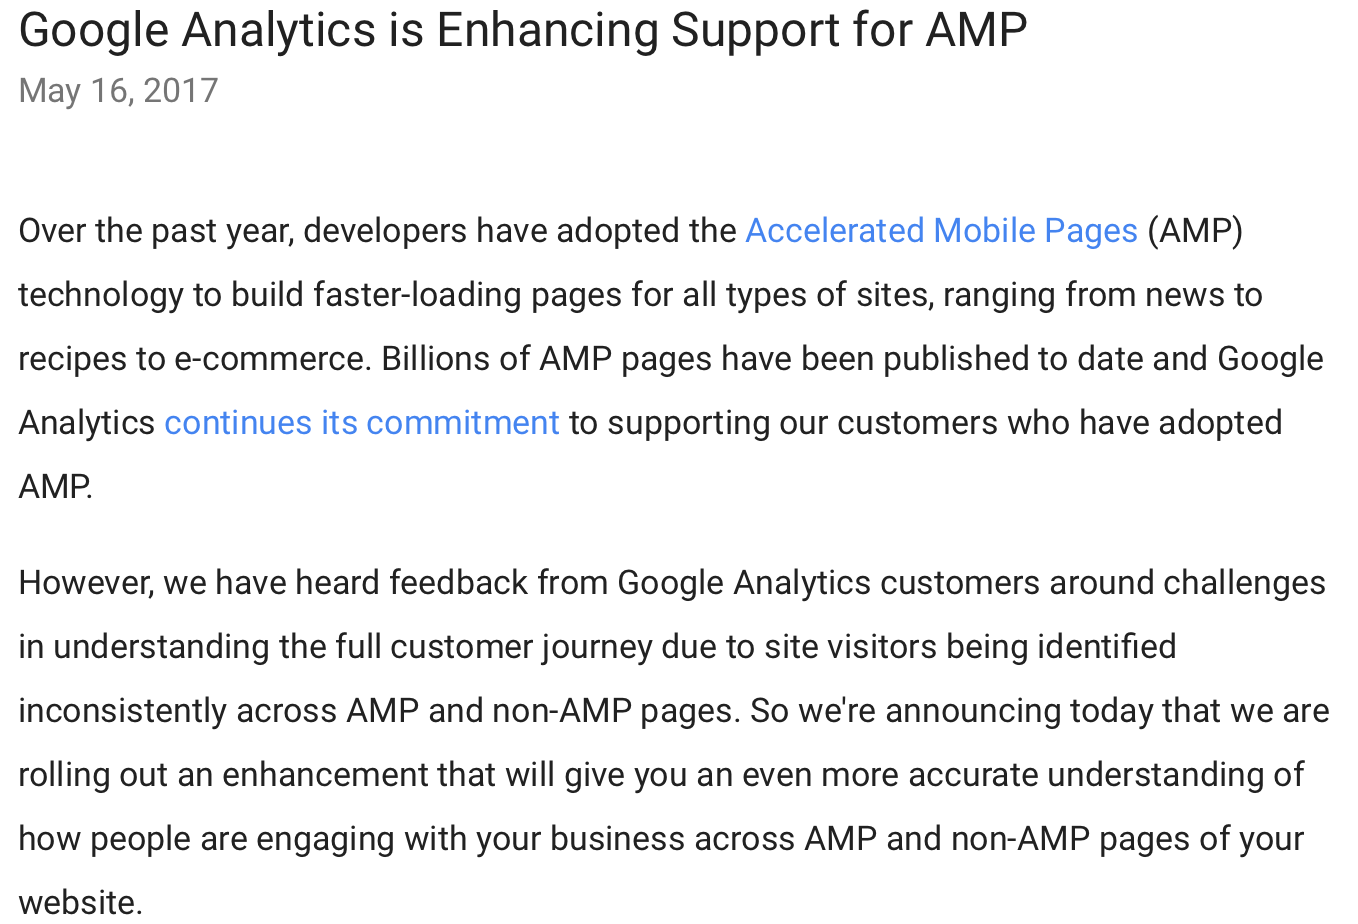 TWIS 19 May 2017 Google Analytics AMP Enhancements